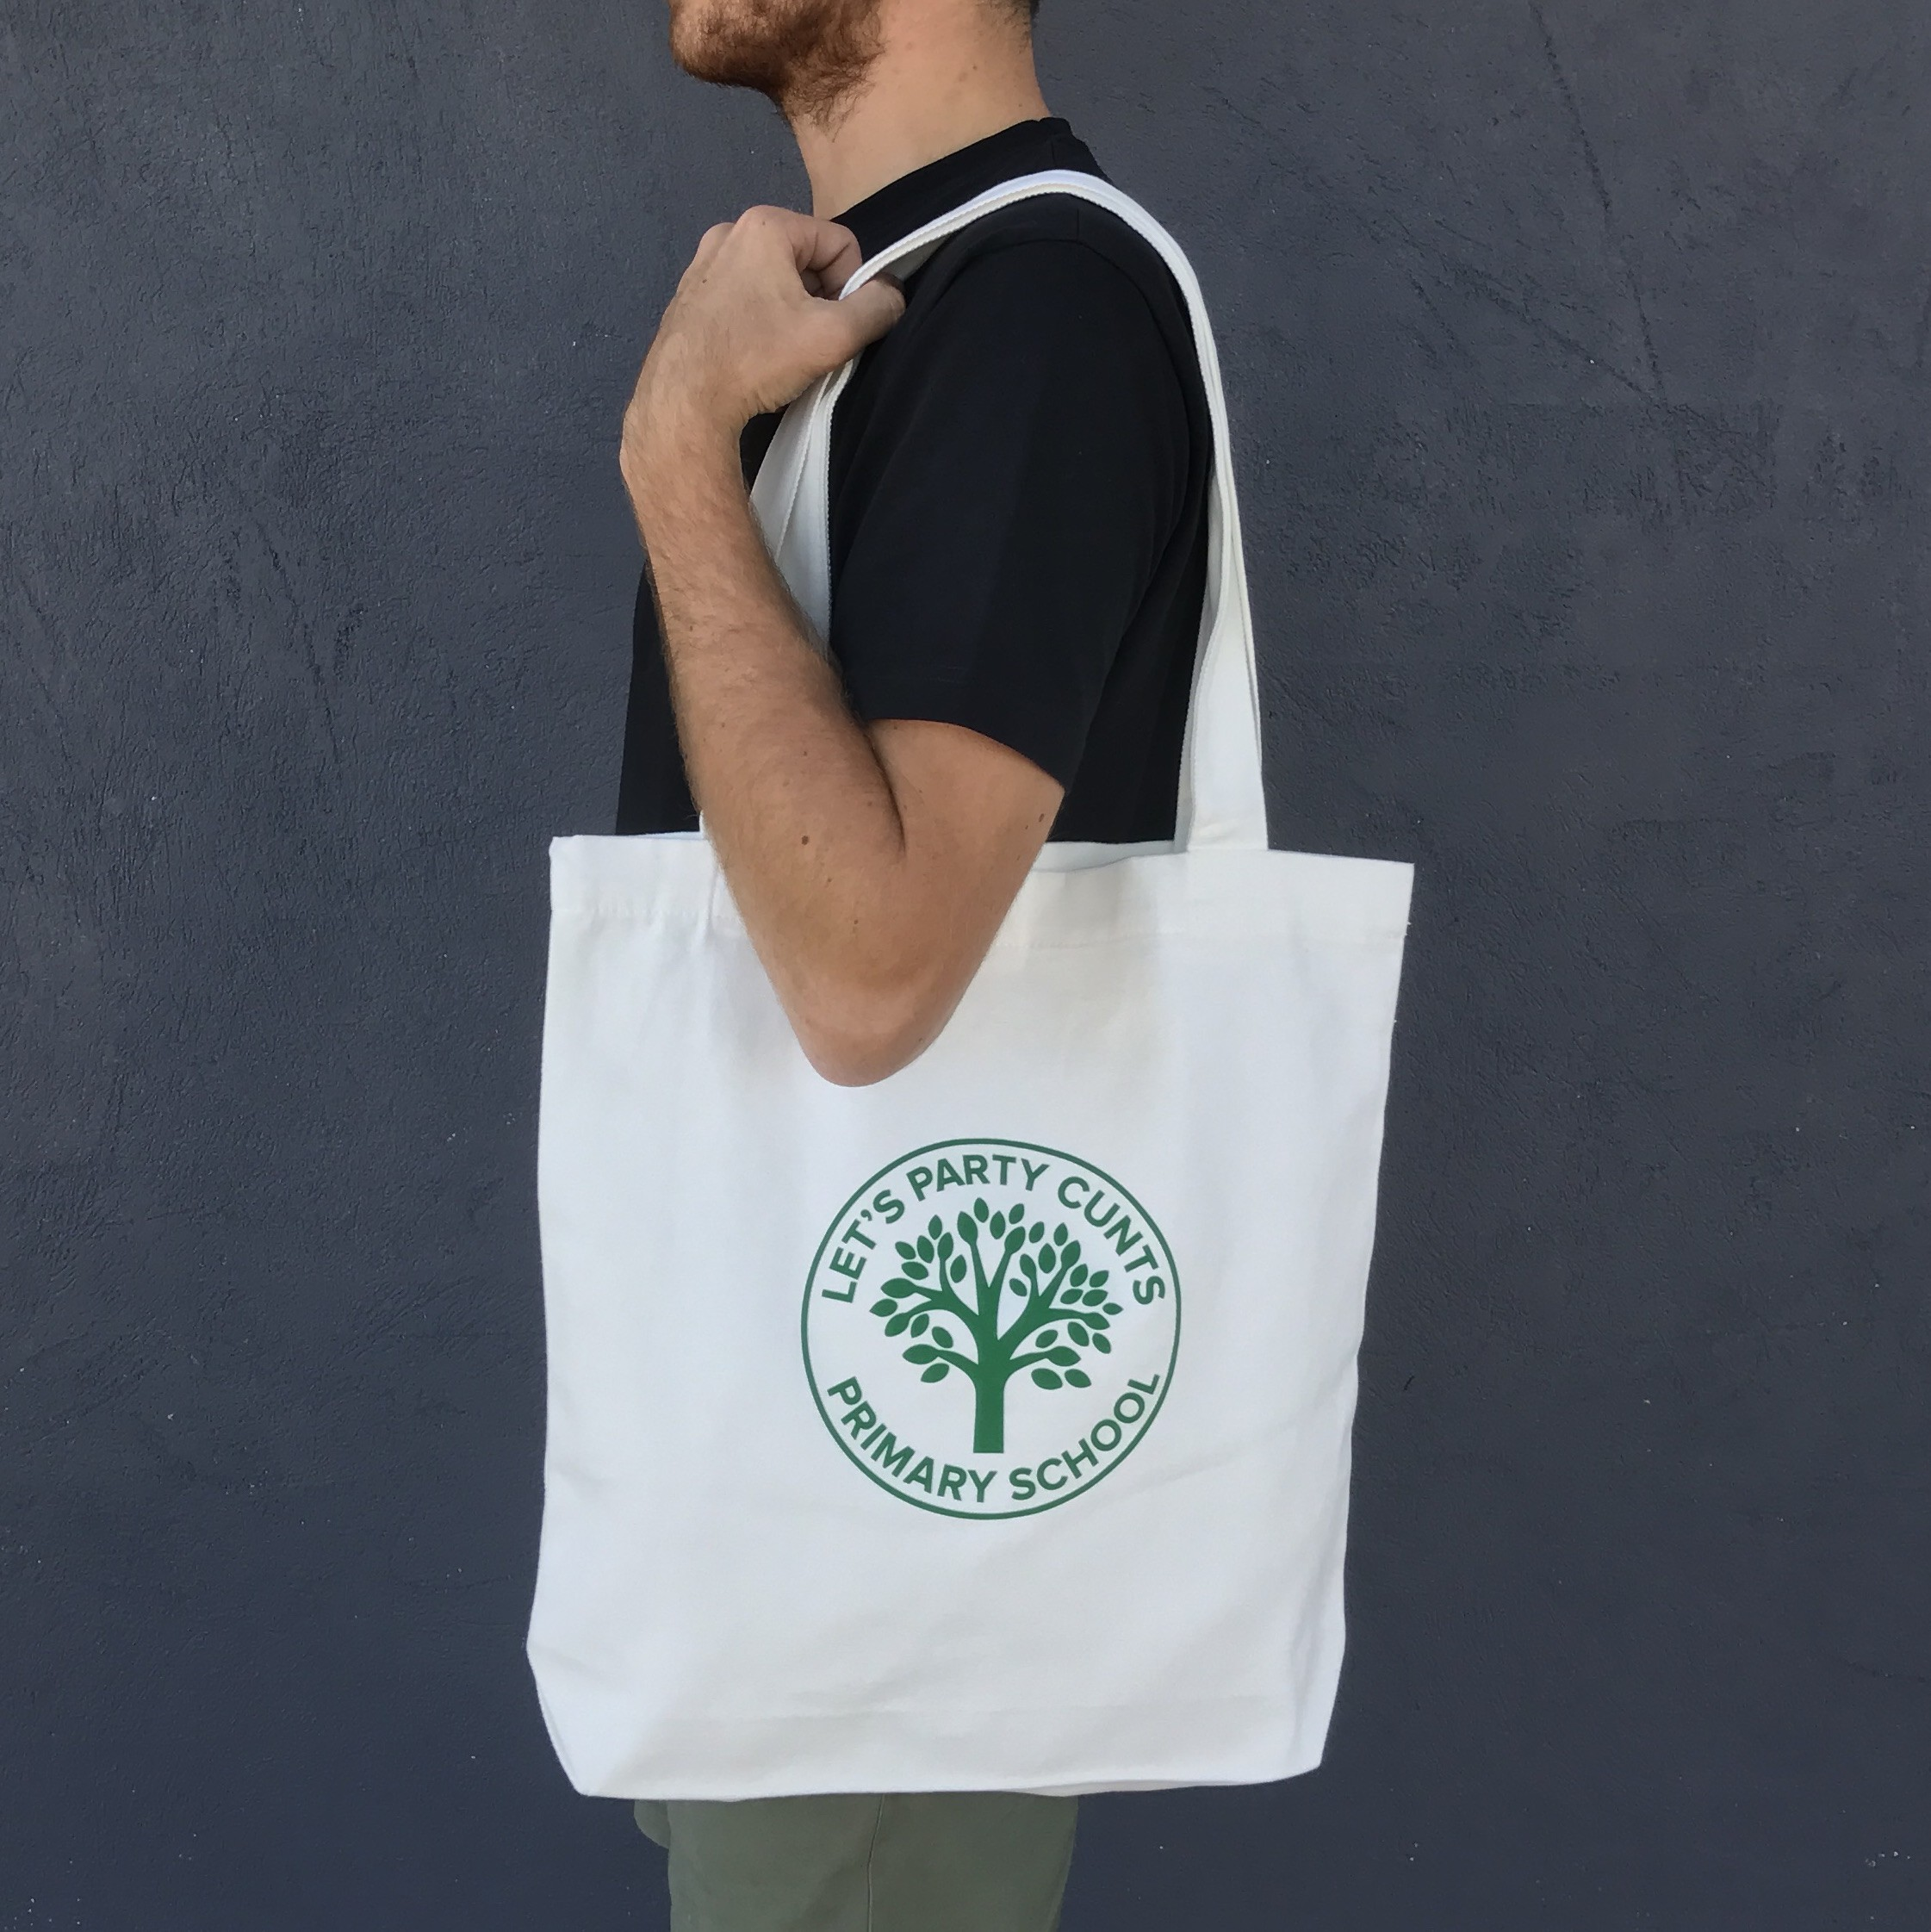 PRIMARY SCHOOL LETS PARTY TOTE BAG